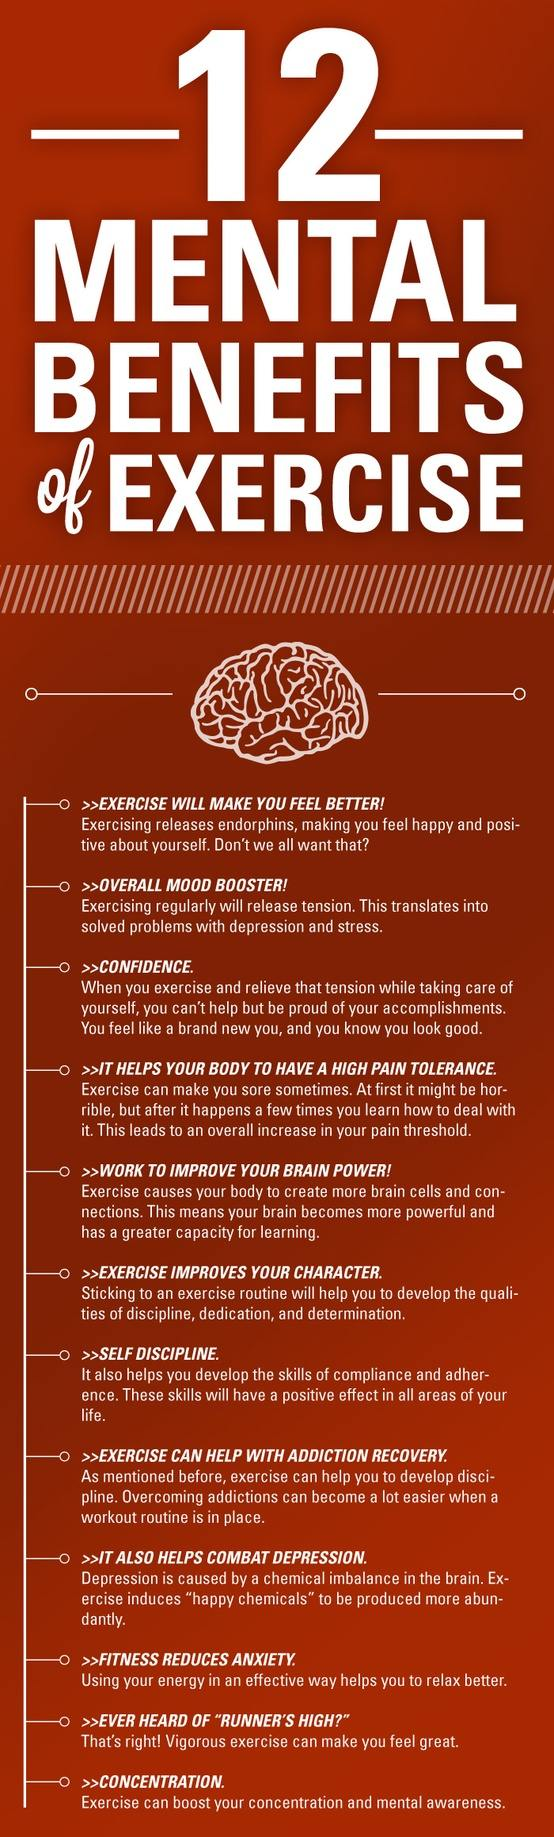 Exercise for mental wellness.